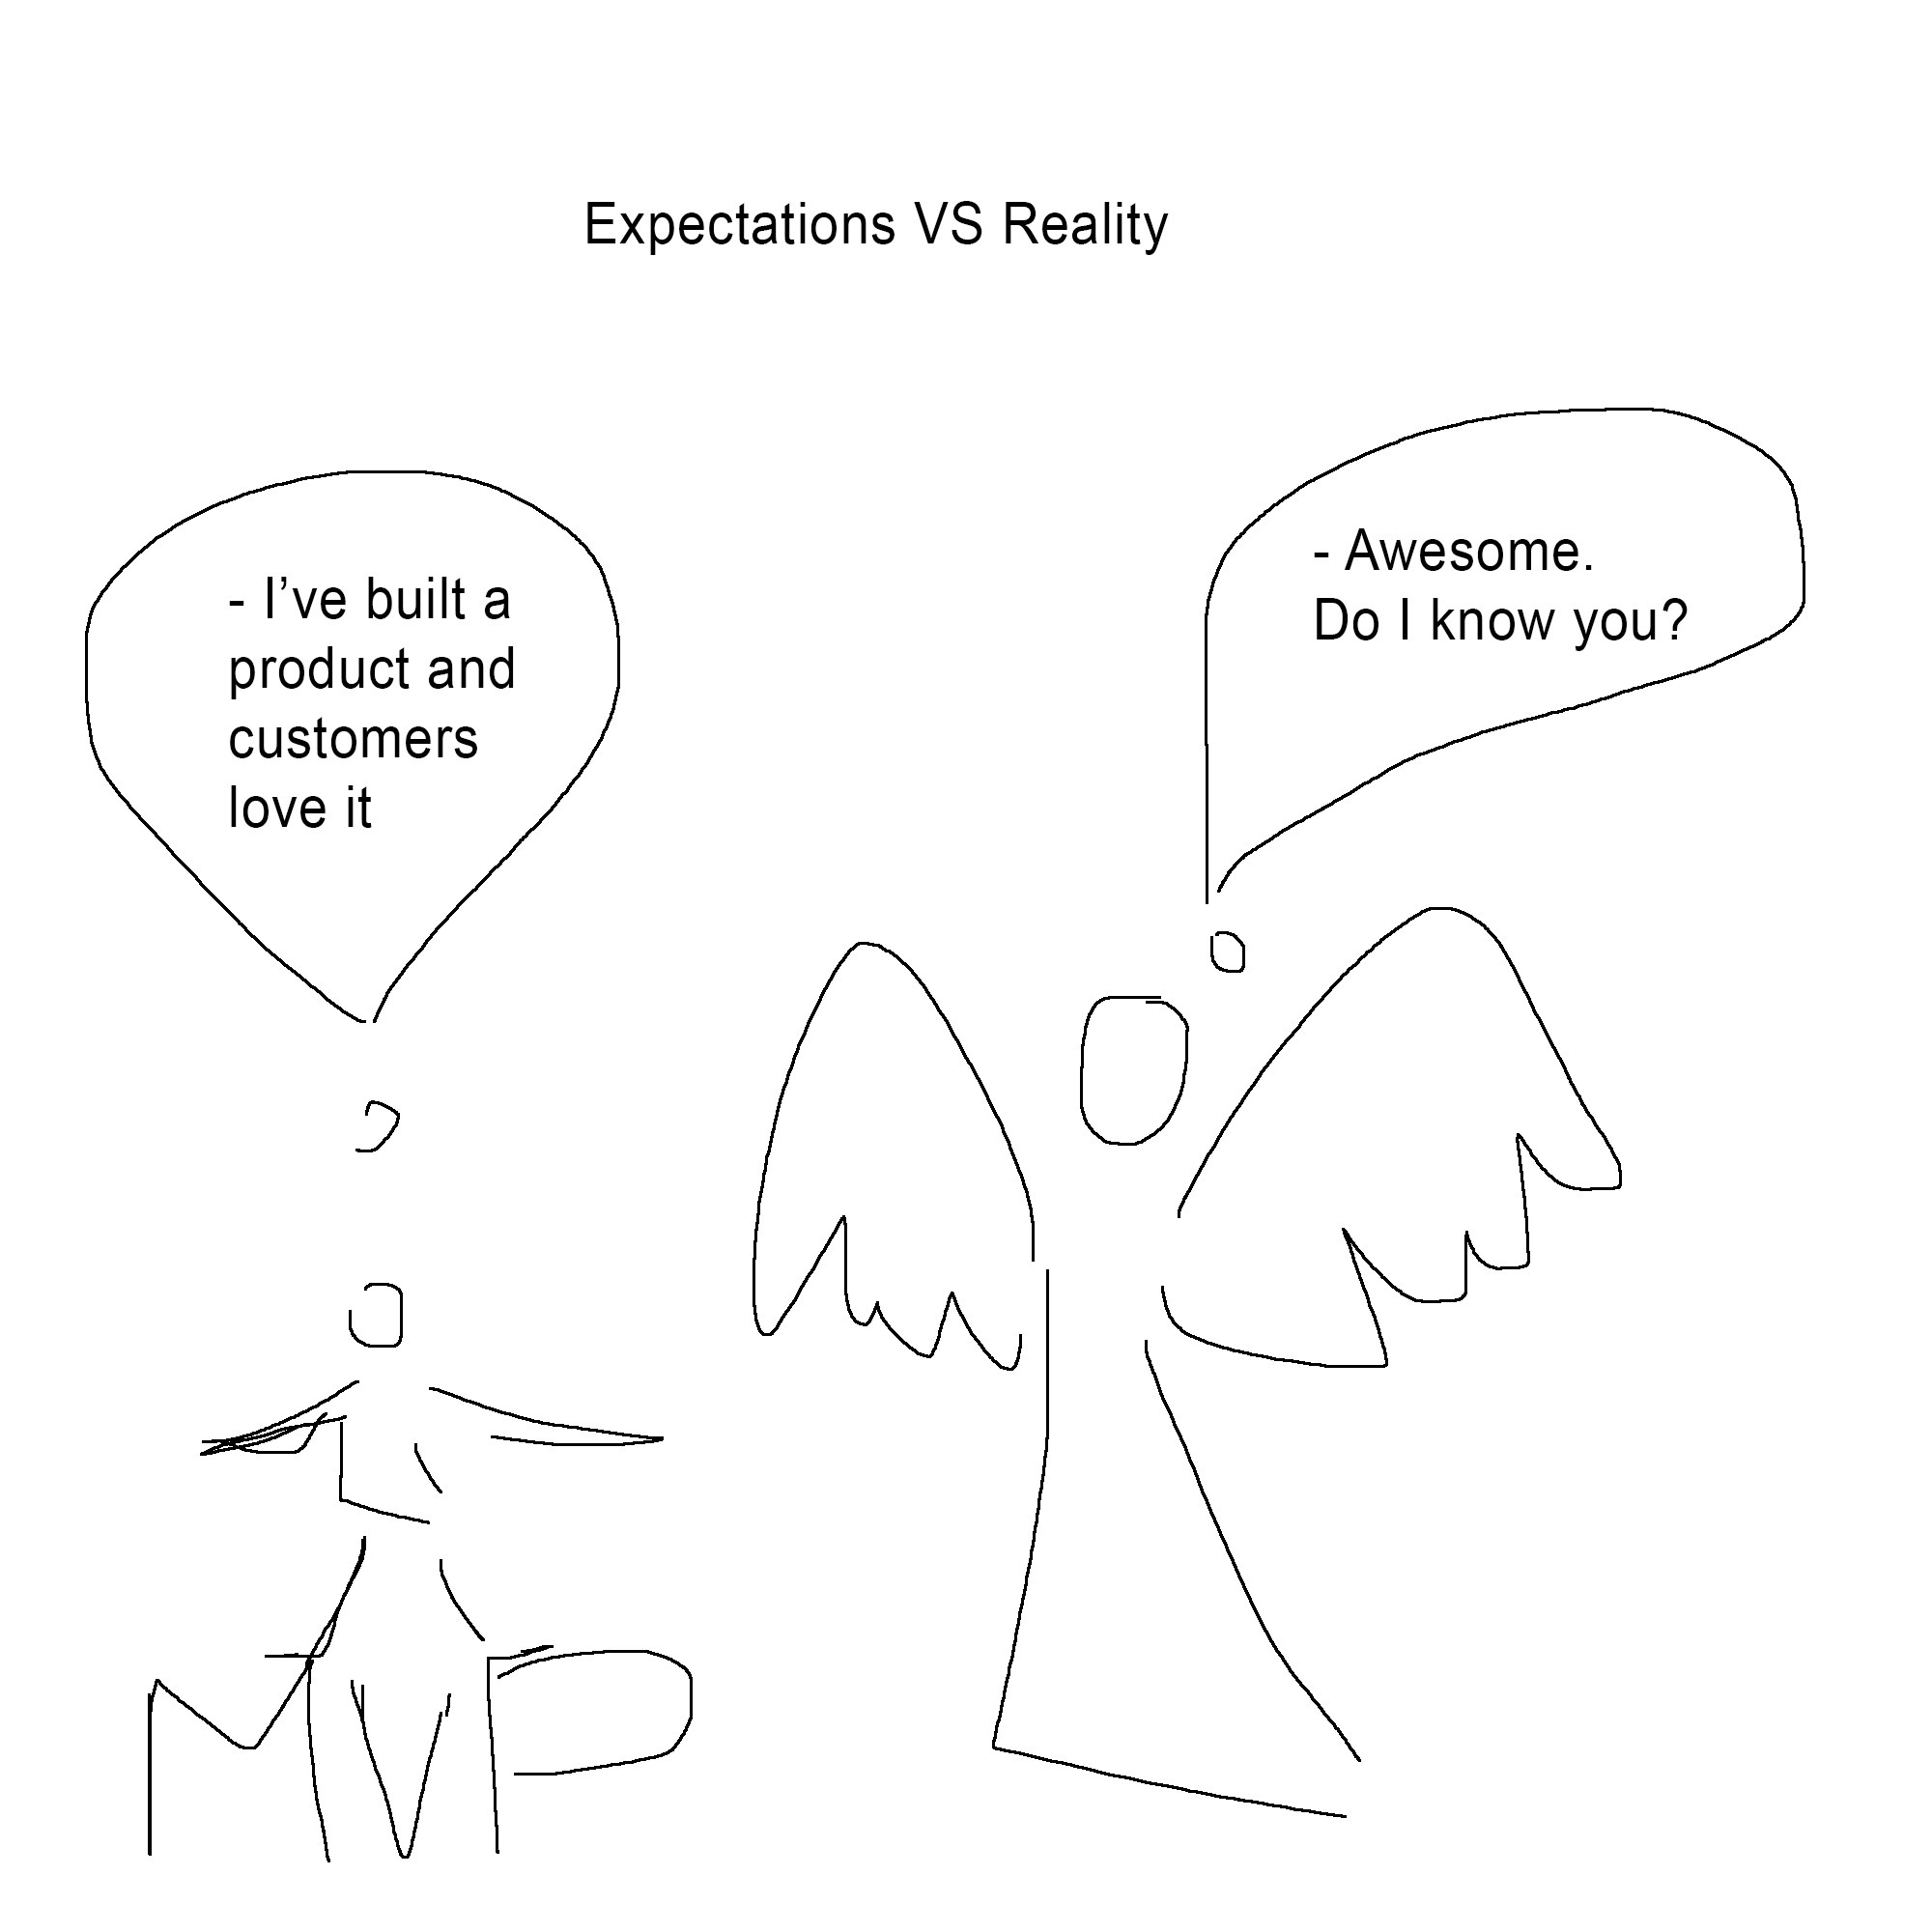 Expectations vs reality: angels